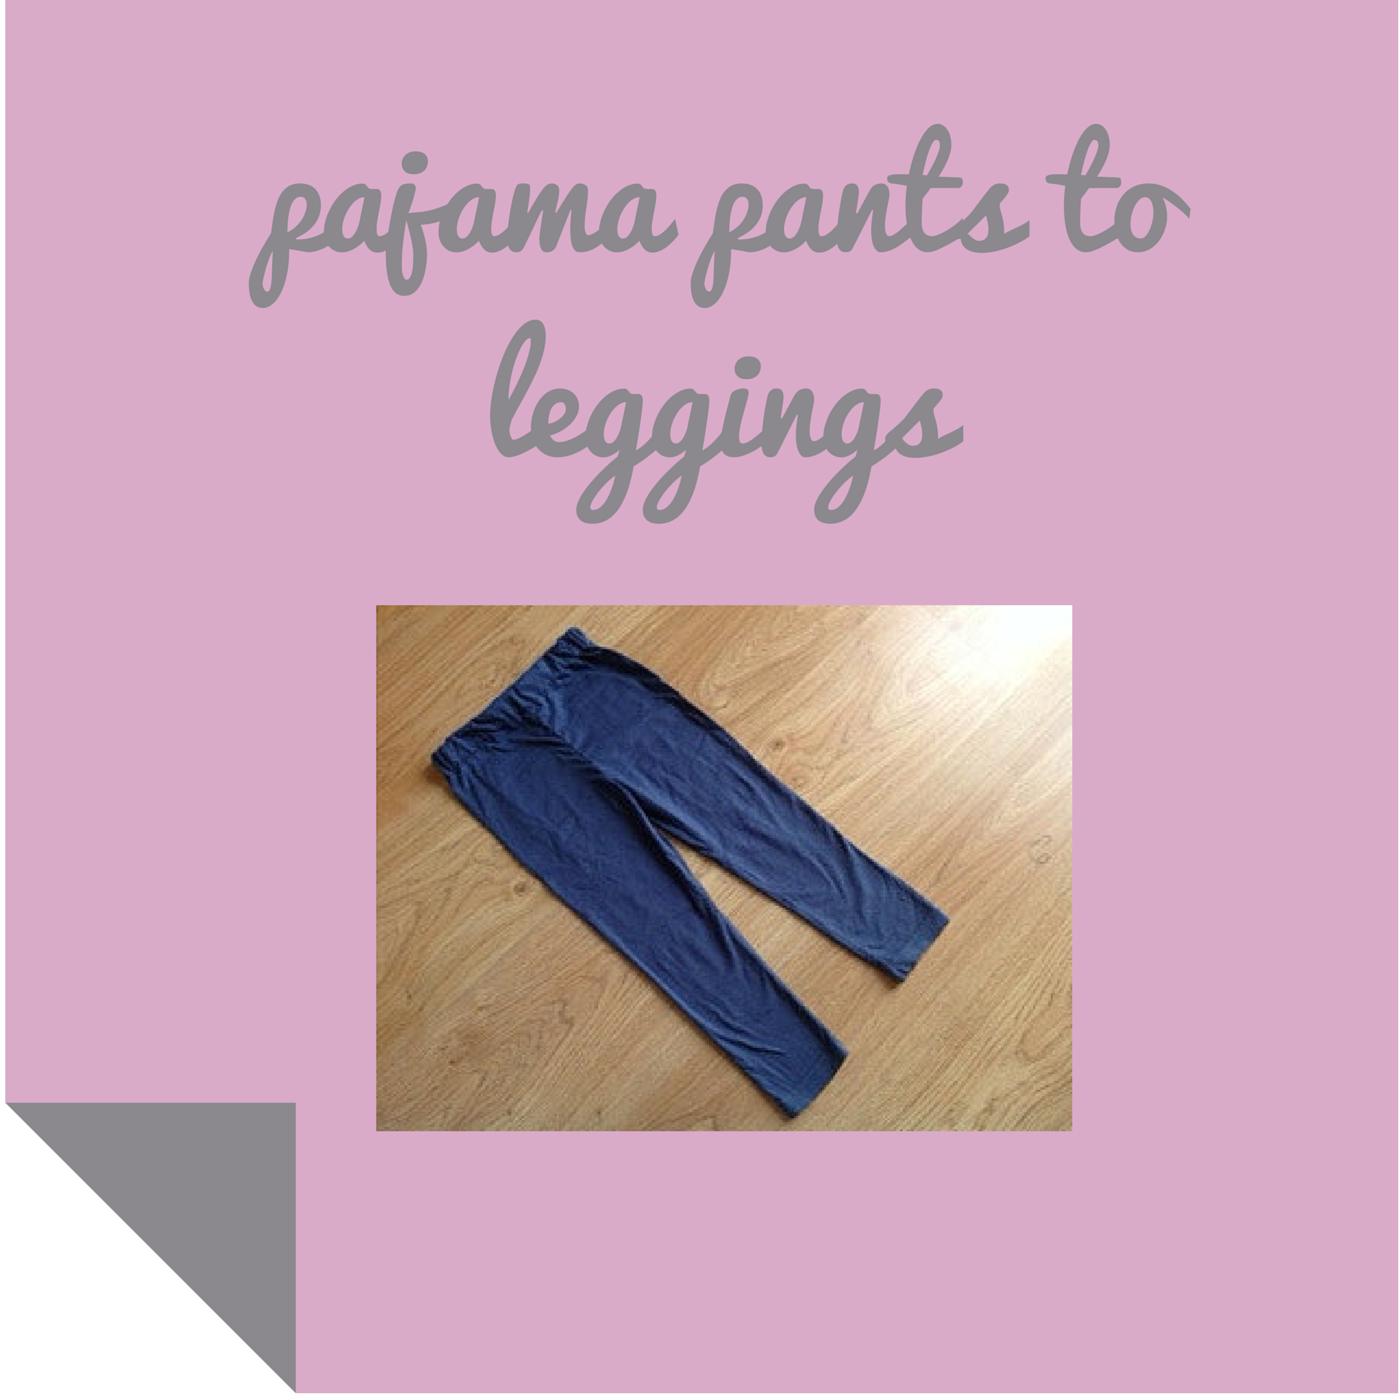 http://keepingitrreal.blogspot.com.es/2015/02/reuse-upcycle-mans-pajamas-pants-to.html